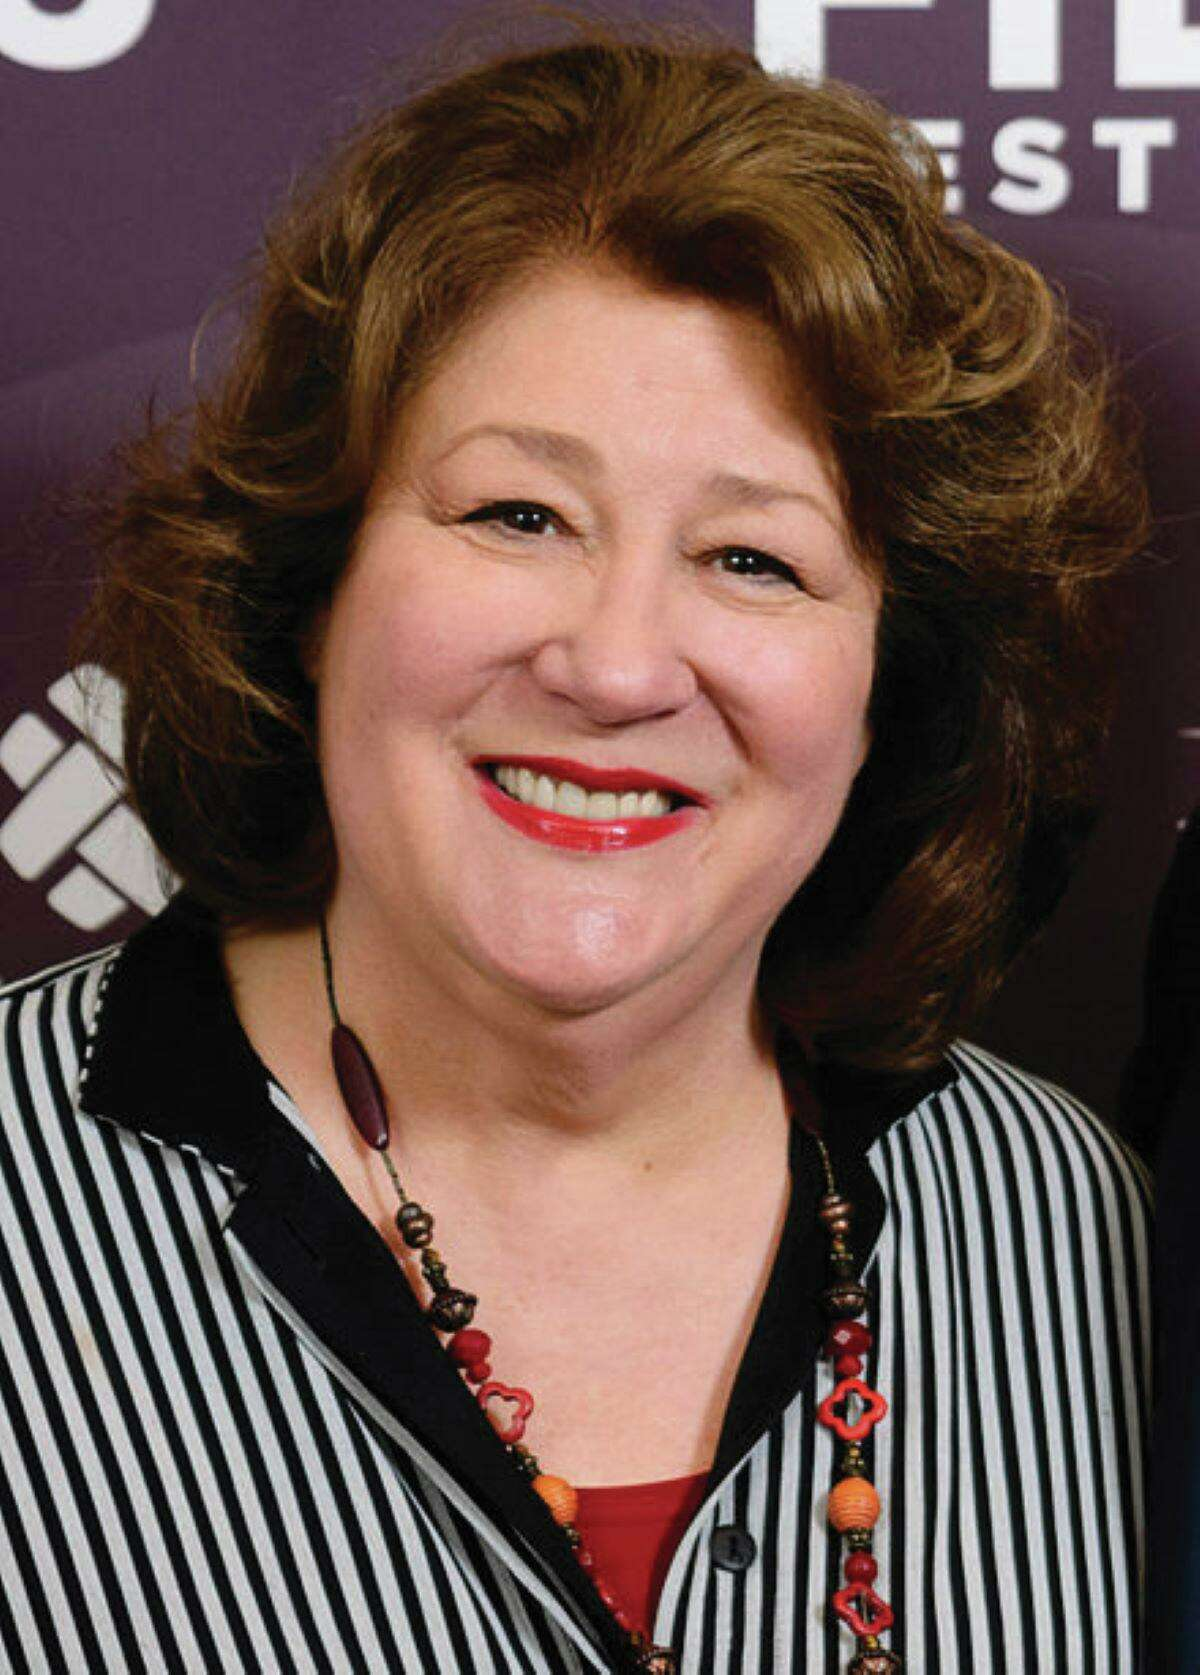 Emmy winner Margo Martindale, who has a home in Kent, has appeared in numerous TV series and films.